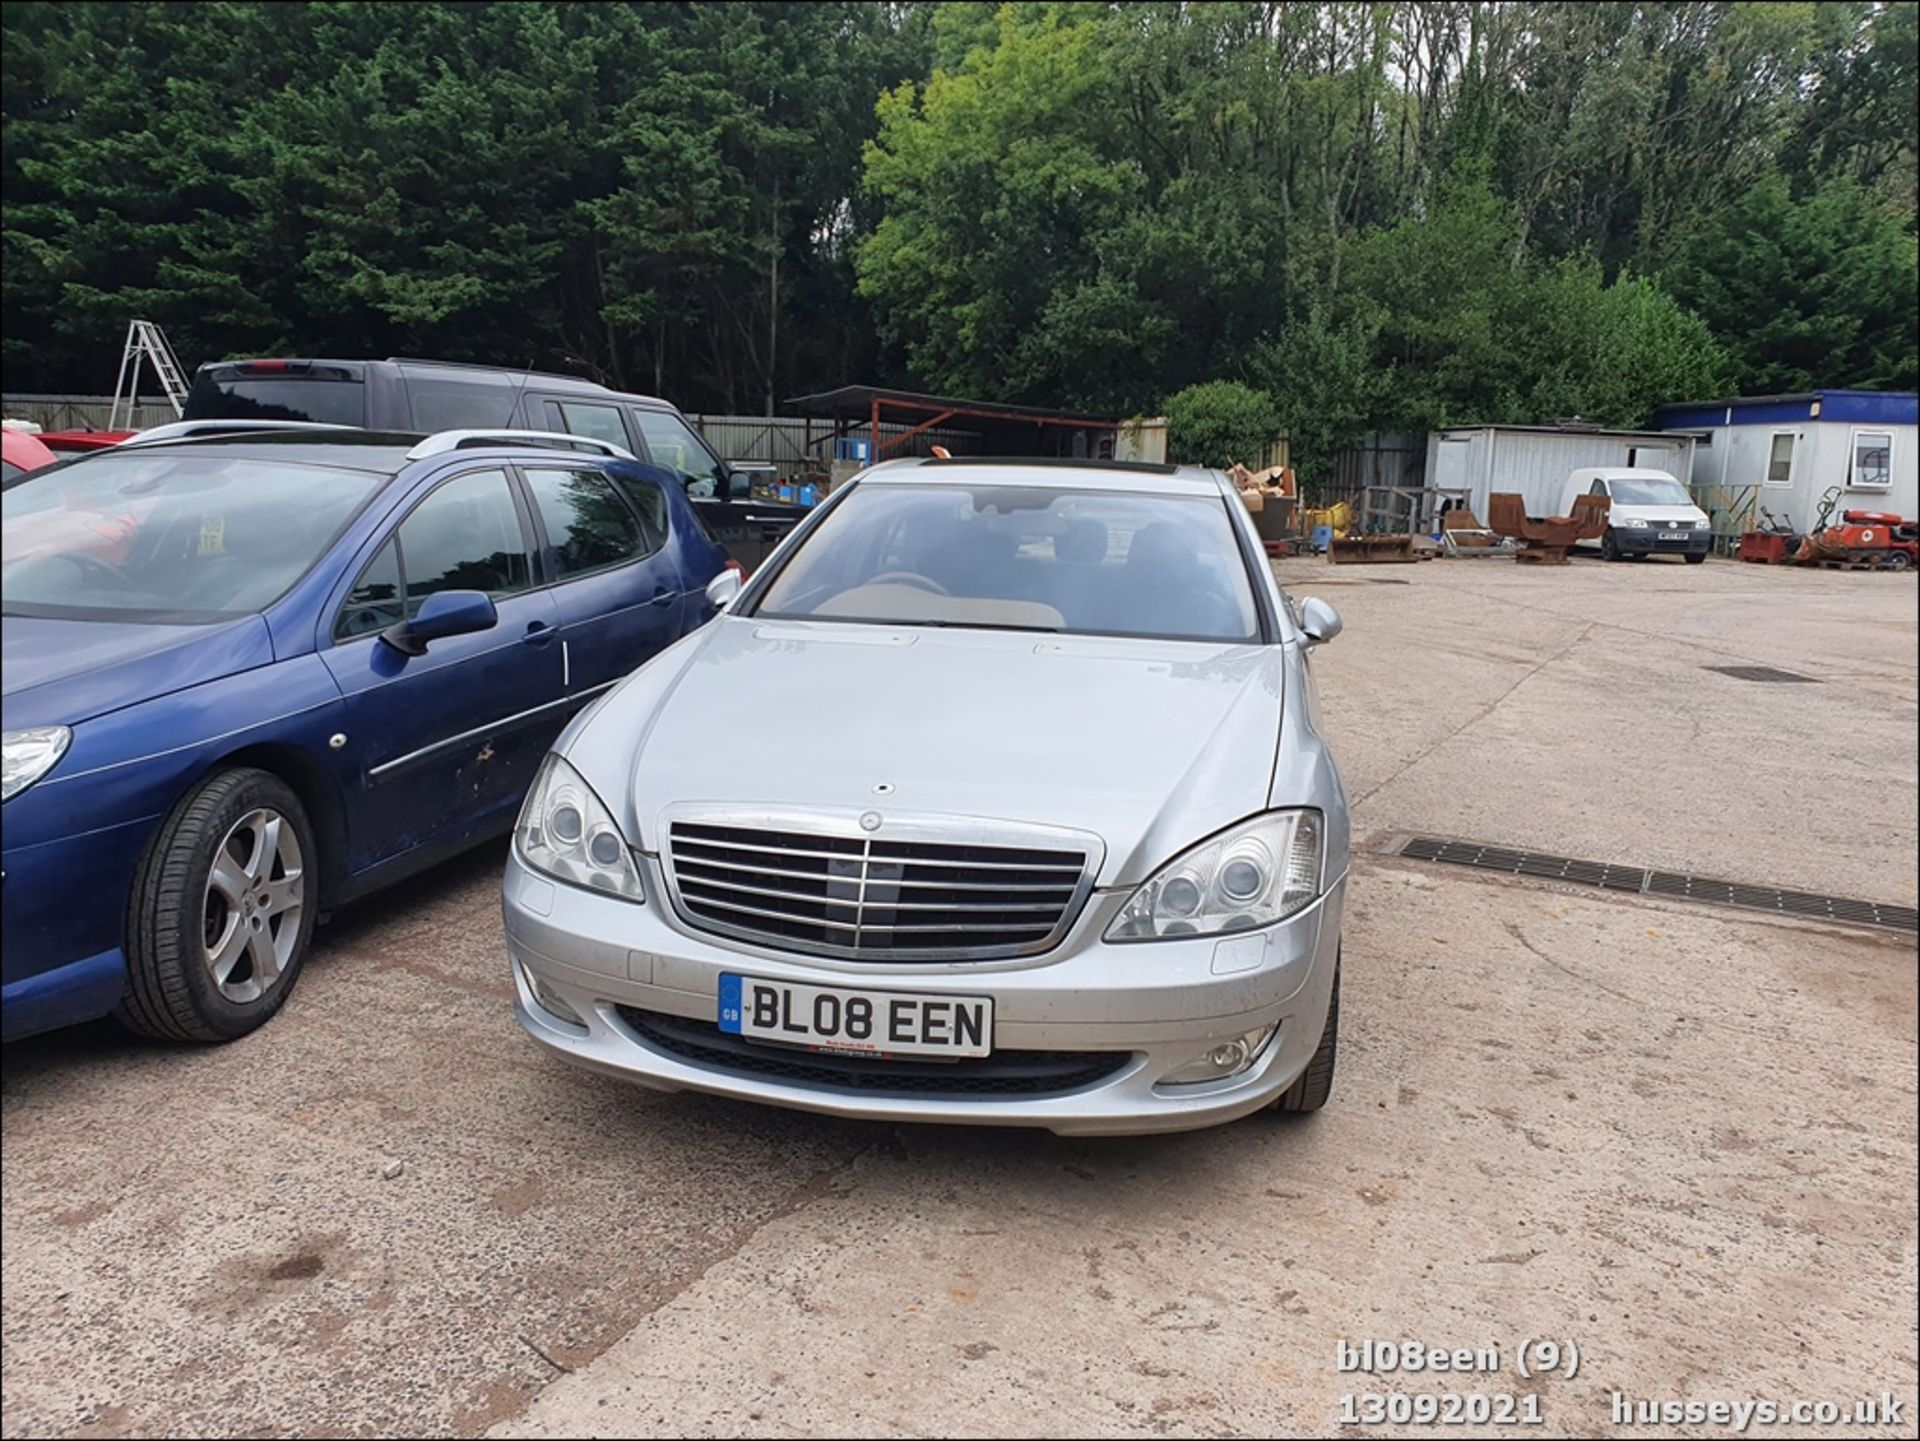 08/08 MERCEDES S320 CDI AUTO - 2987cc 4dr Saloon (Silver, 205k) - Image 9 of 16